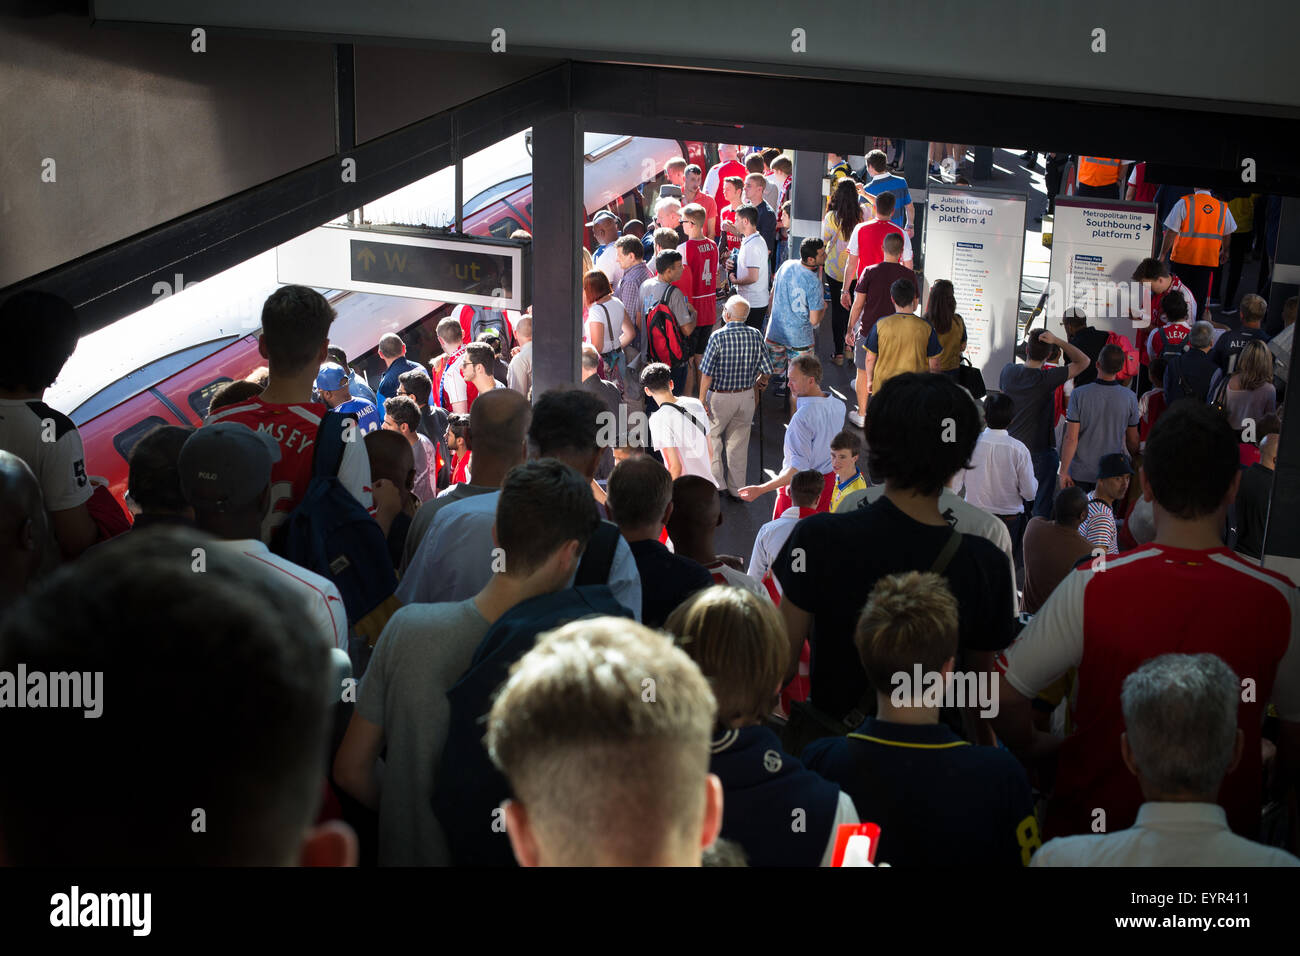 Football supporters at Wembley Park Station after the Community Shield - Stock Image